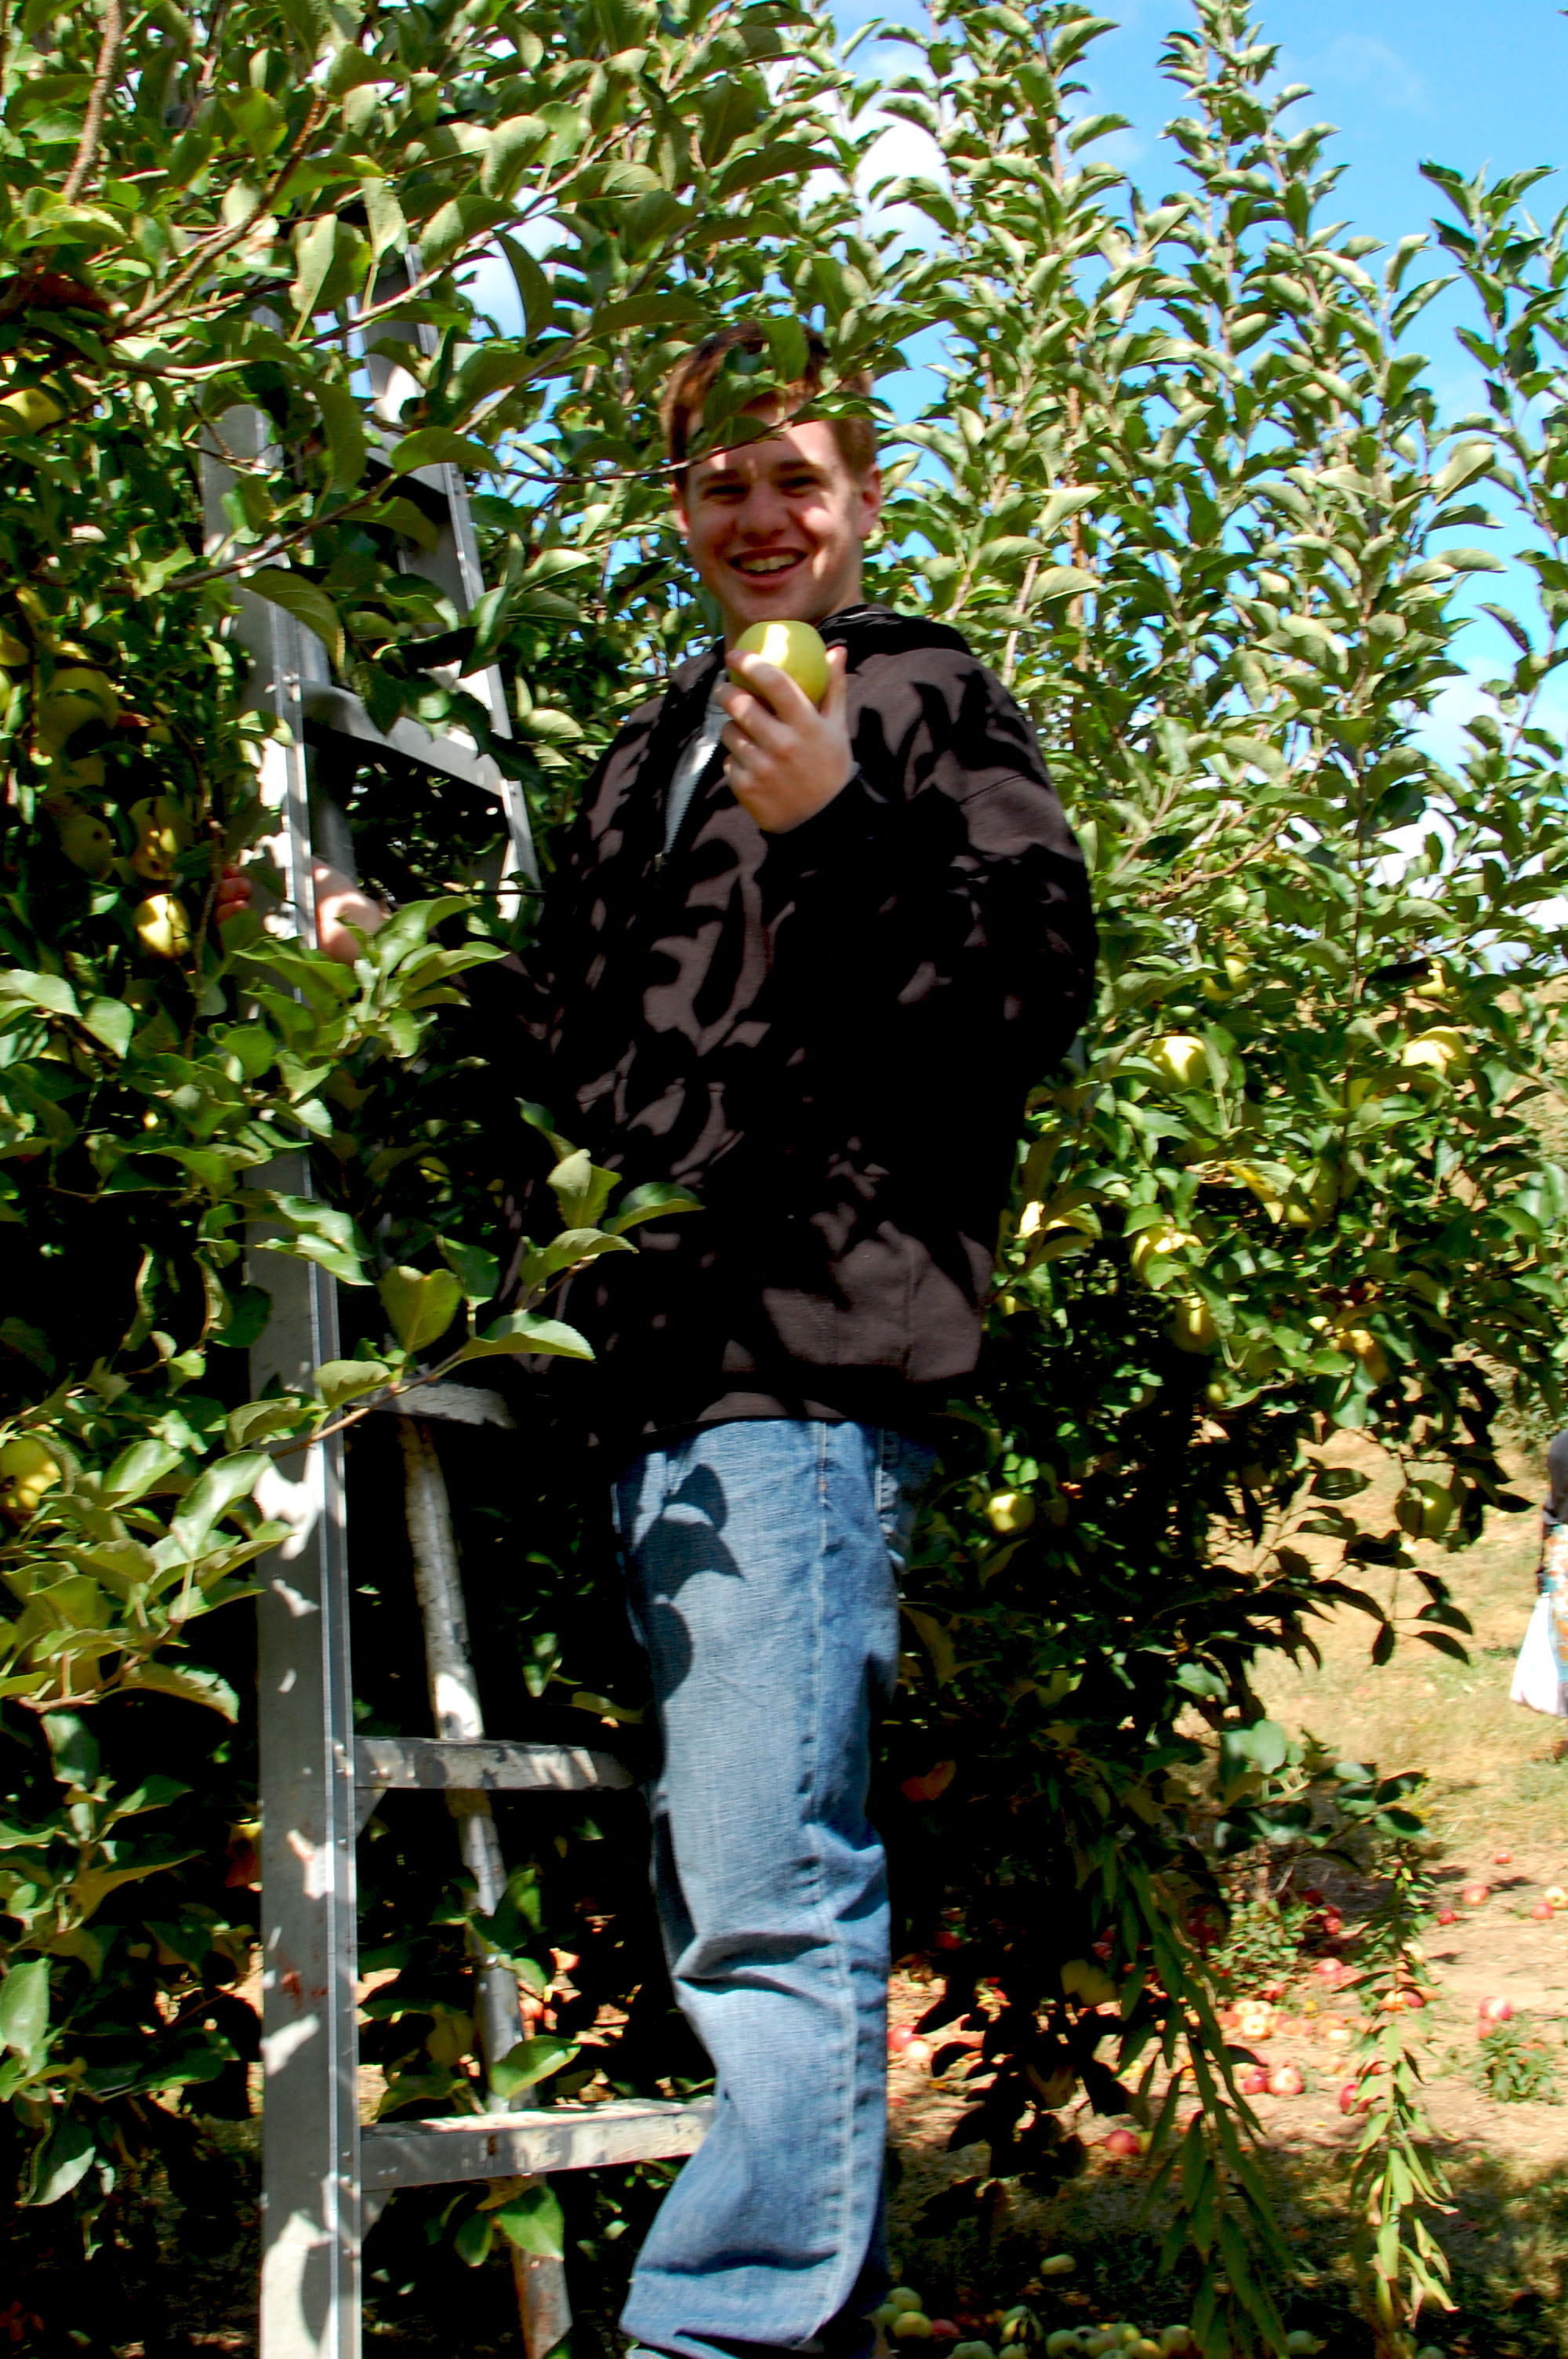 Picking your own Apples is not only awesome, but ensures that you get the freshest and highest quality.